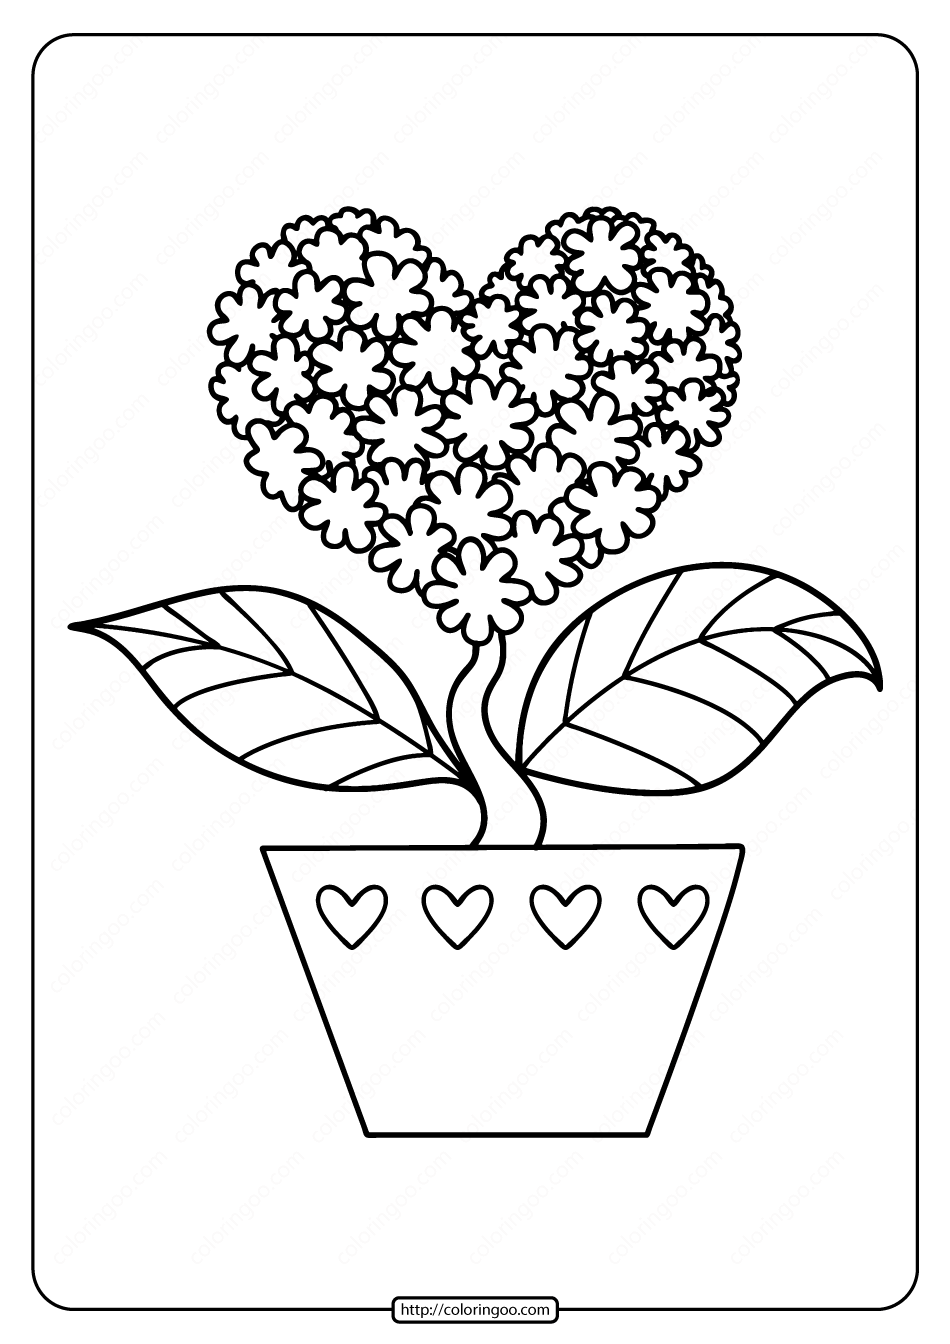 coloring pictures of flowers and hearts coloring pages of hearts and flowers at getdrawings free of flowers and pictures coloring hearts